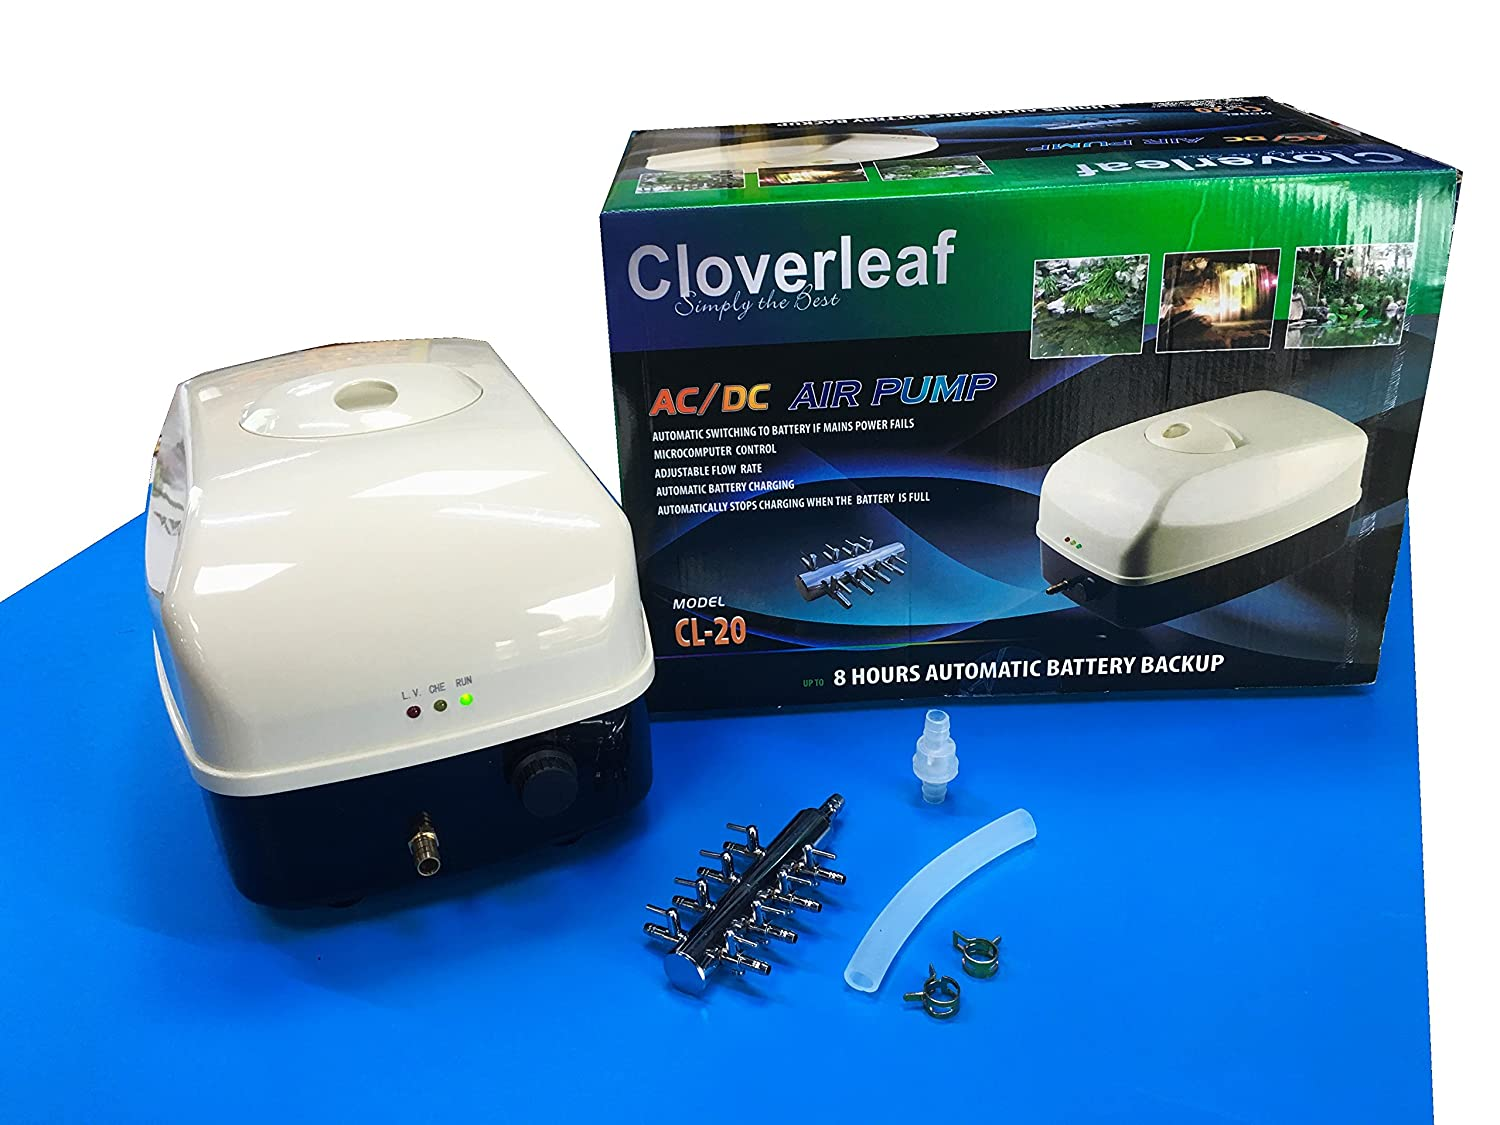 Cloverleaf CL-20 Smart Air Pump With upto 8 Hour Battery Backup AC/DC